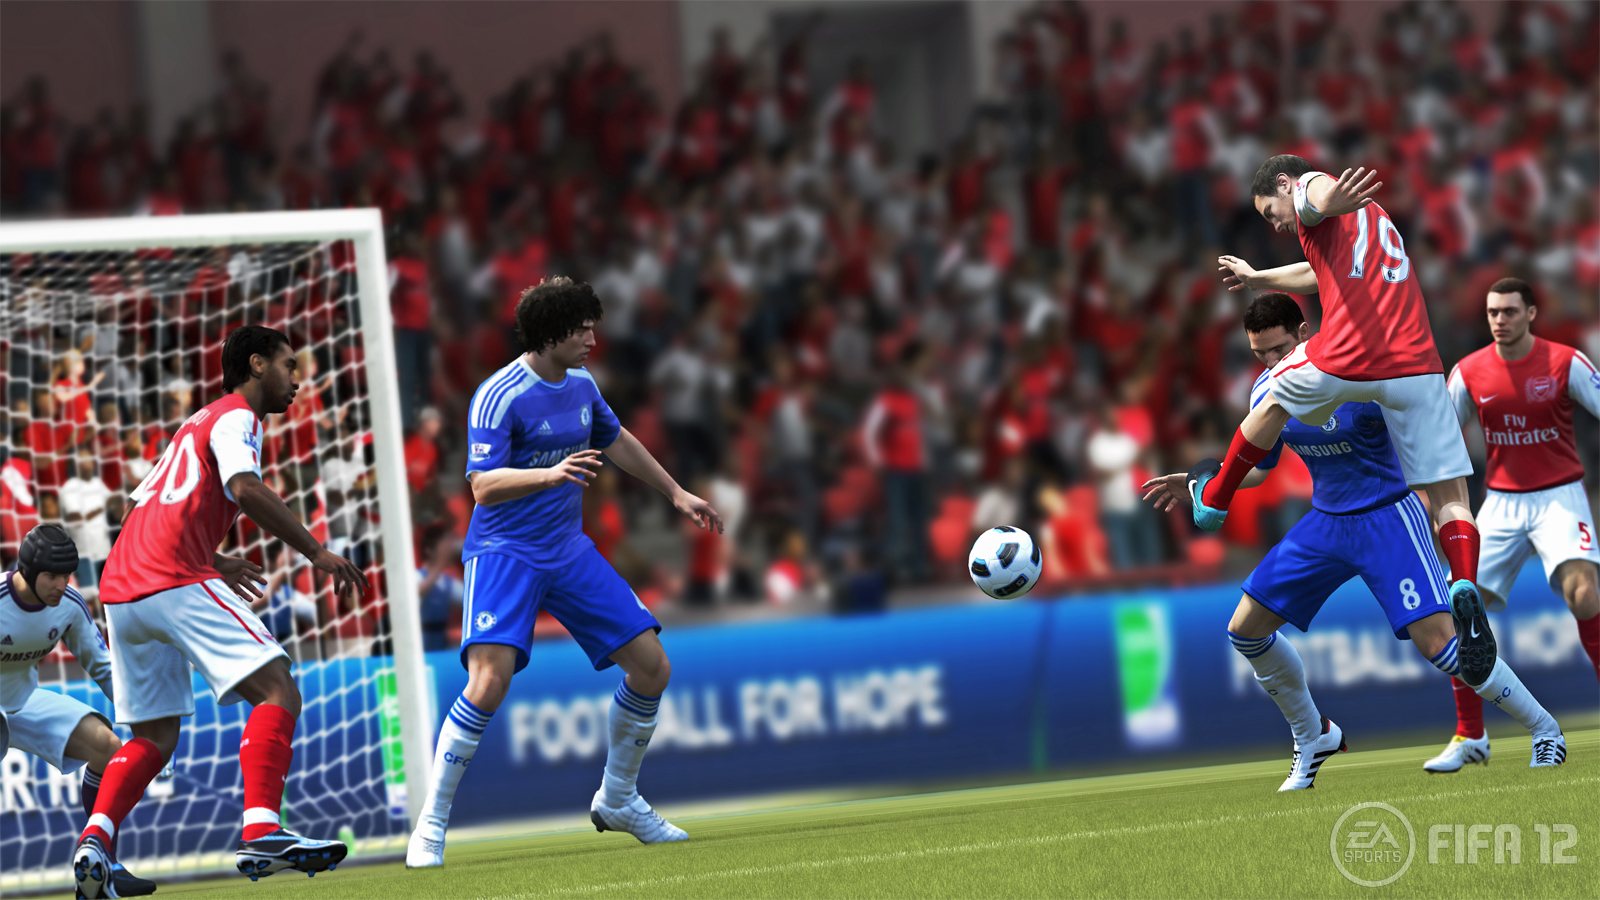 [IMG]http://www.dsogaming.com/wp-content/uploads/2011/07/fifa12_ps3_wilshere_shot_on_net.jpg[/IMG]